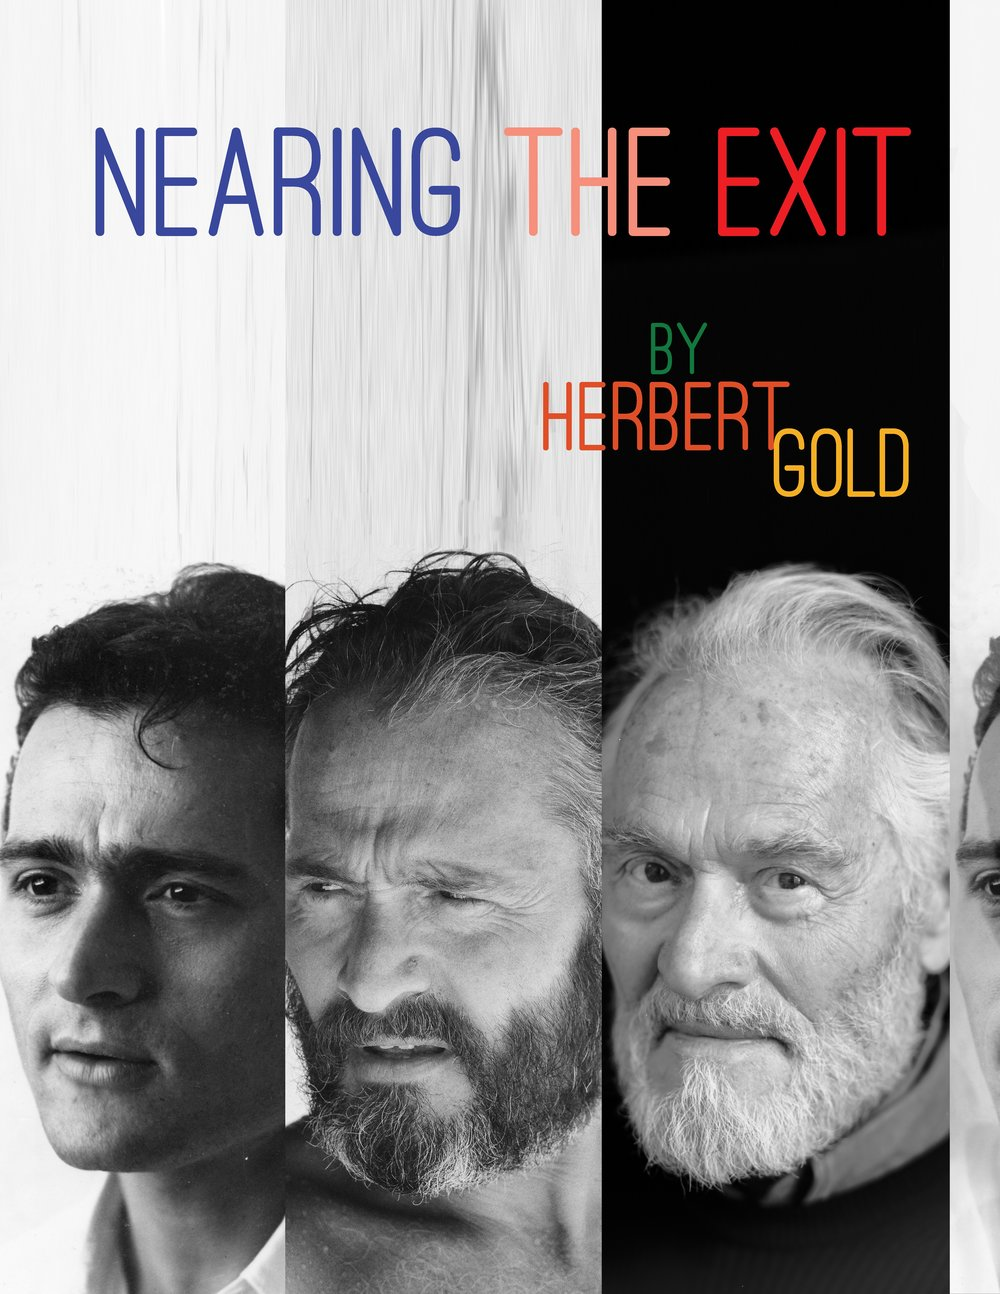 NEARING THE EXITTen Poemsby Herbert Gold - 2018Seven decades after giving up poetry, celebrated novelist, short-story writer, and essayist Herbert Gold has returned to the love of his youth, with ten powerful poems about facing the exit door.Published by Les Gottesman.Cover design by Ari Gold. Purchase hard copy HERE.